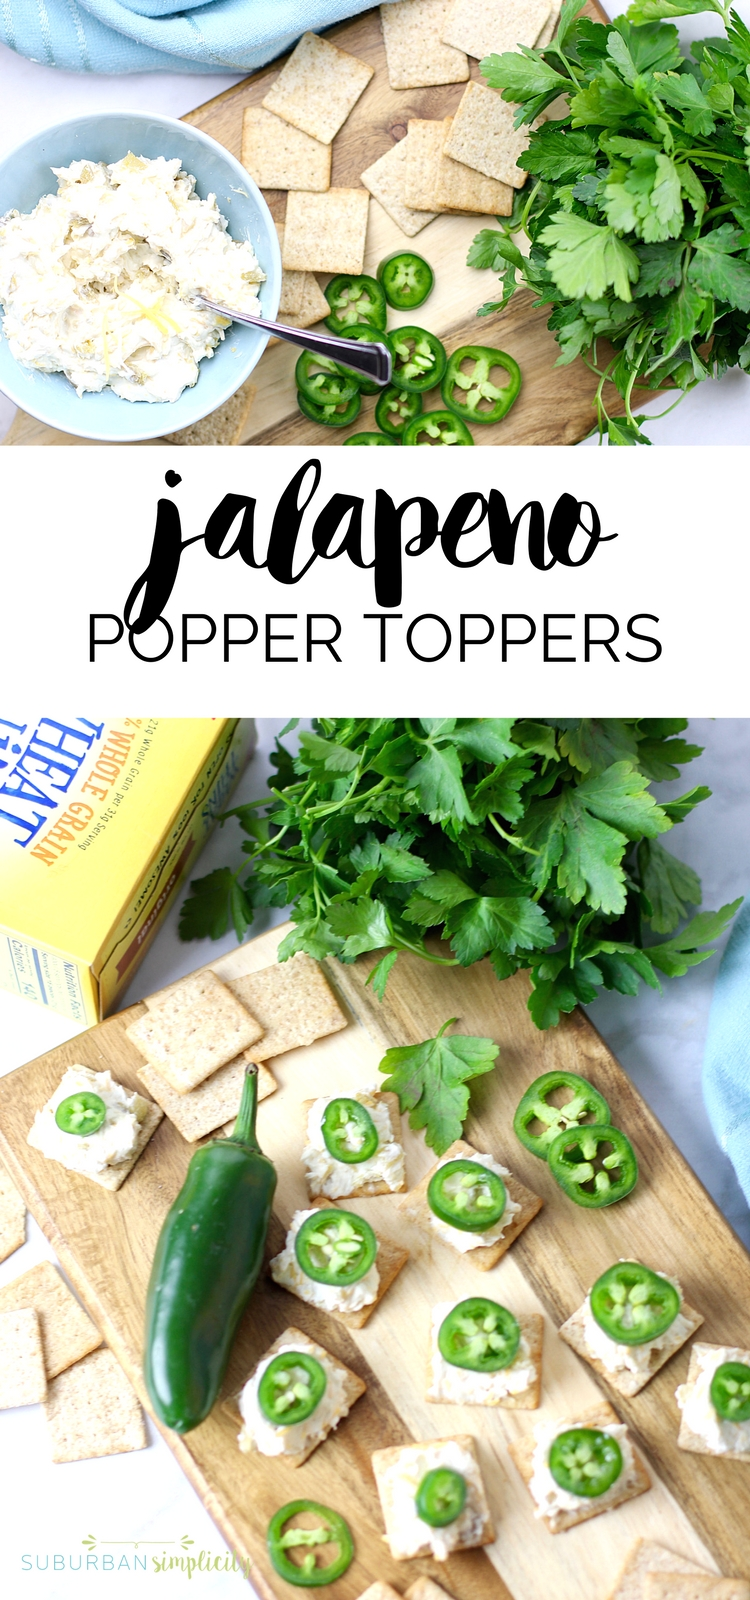 Zesty JALAPEÑO POPPER TOPPERS with WHEAT THINS make the perfect snack for your game day spread. Bite-sized, but plenty of kick featuring a creamy, cheesy spread topped with a fresh jalapeño that you can't resist! #ad #appetizer #gamedayrecipes